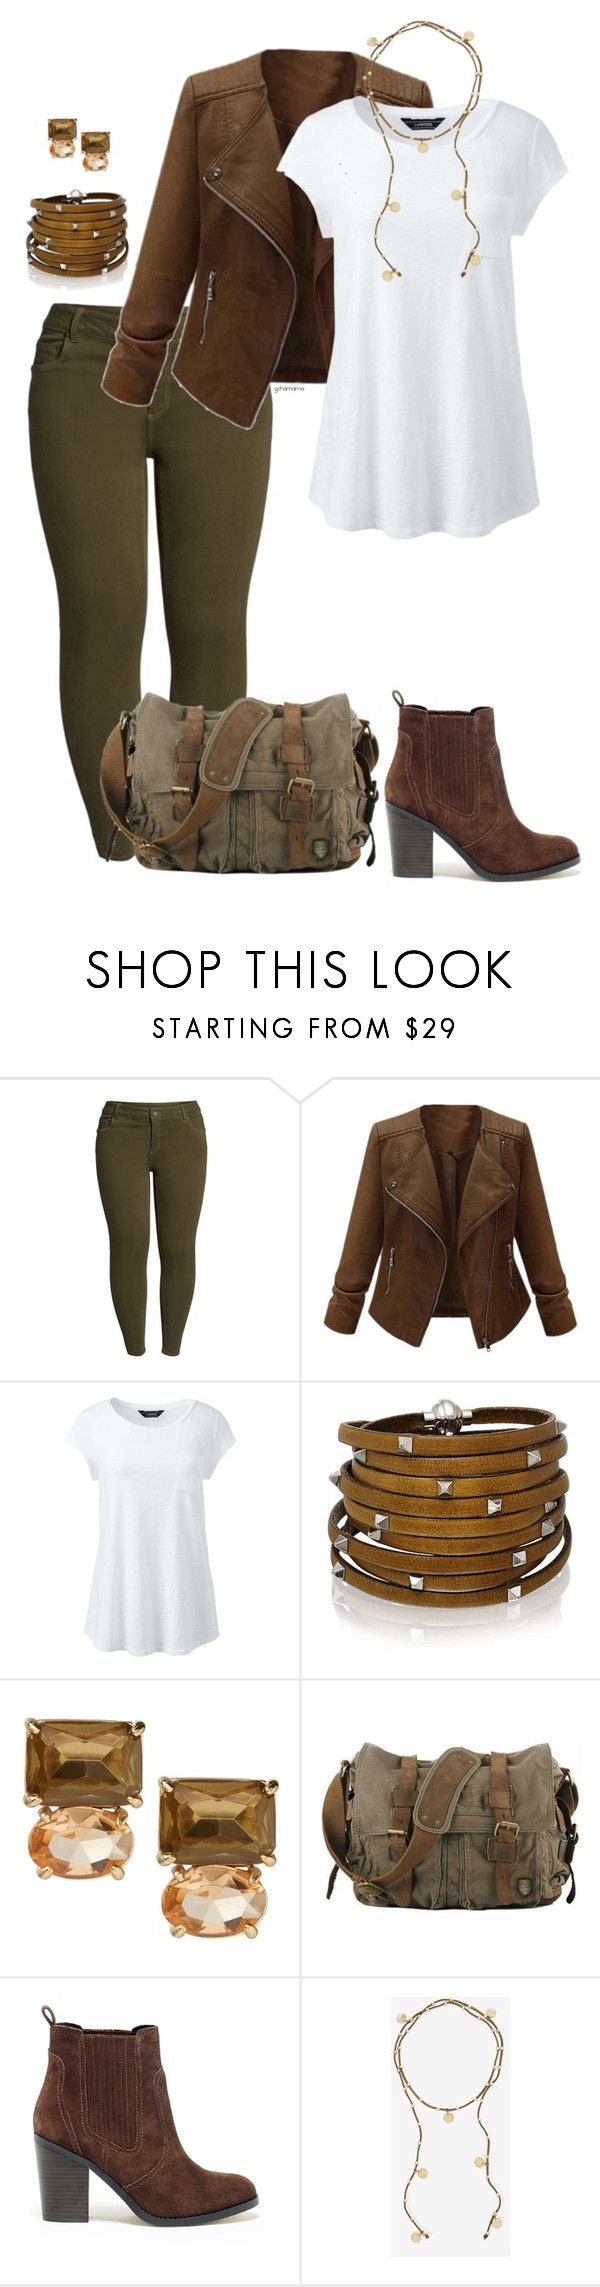 """""""Easy day- plus size"""" by gchamama ❤ liked on Polyvore featuring KUT from the Kloth, Lands' End, Sif Jakobs Jewellery, Sole Society, White House Black Market and plus size clothing"""